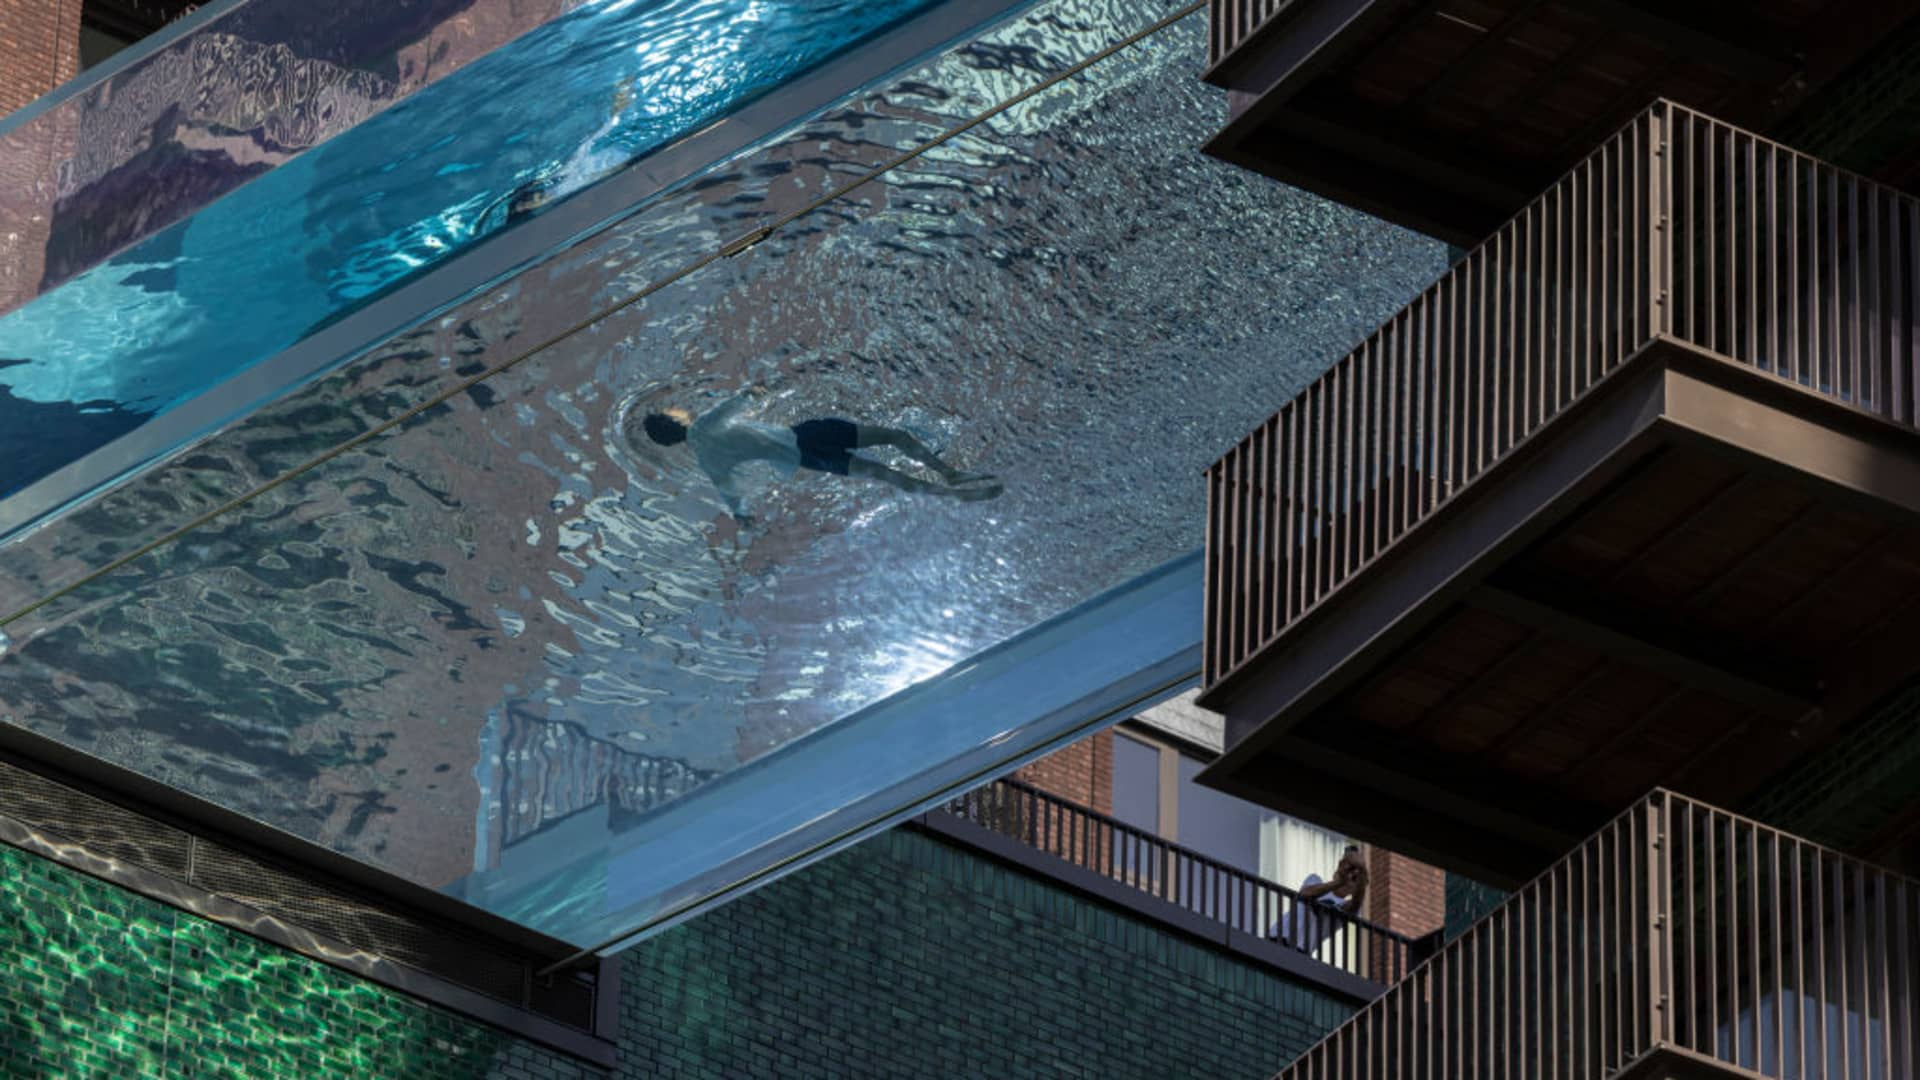 The new Sky Pool at Embassy Gardens in south-west London on April 23, 2021 in London, England.